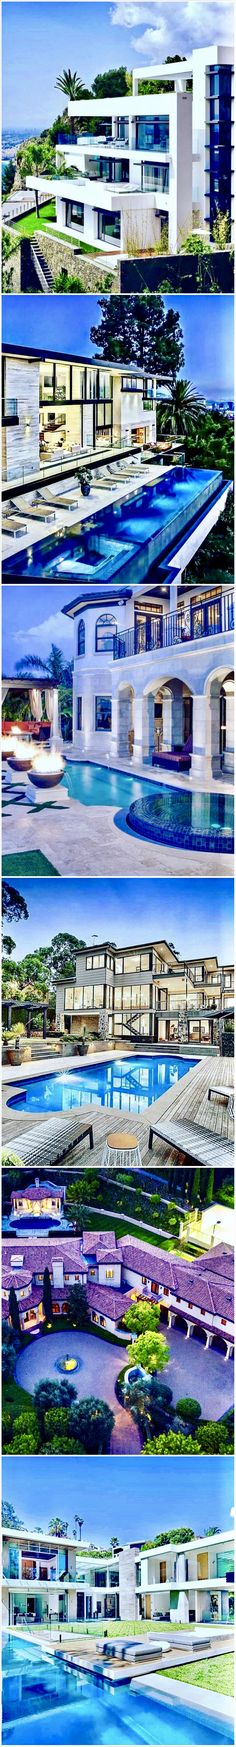 Dream Hone California Mansions